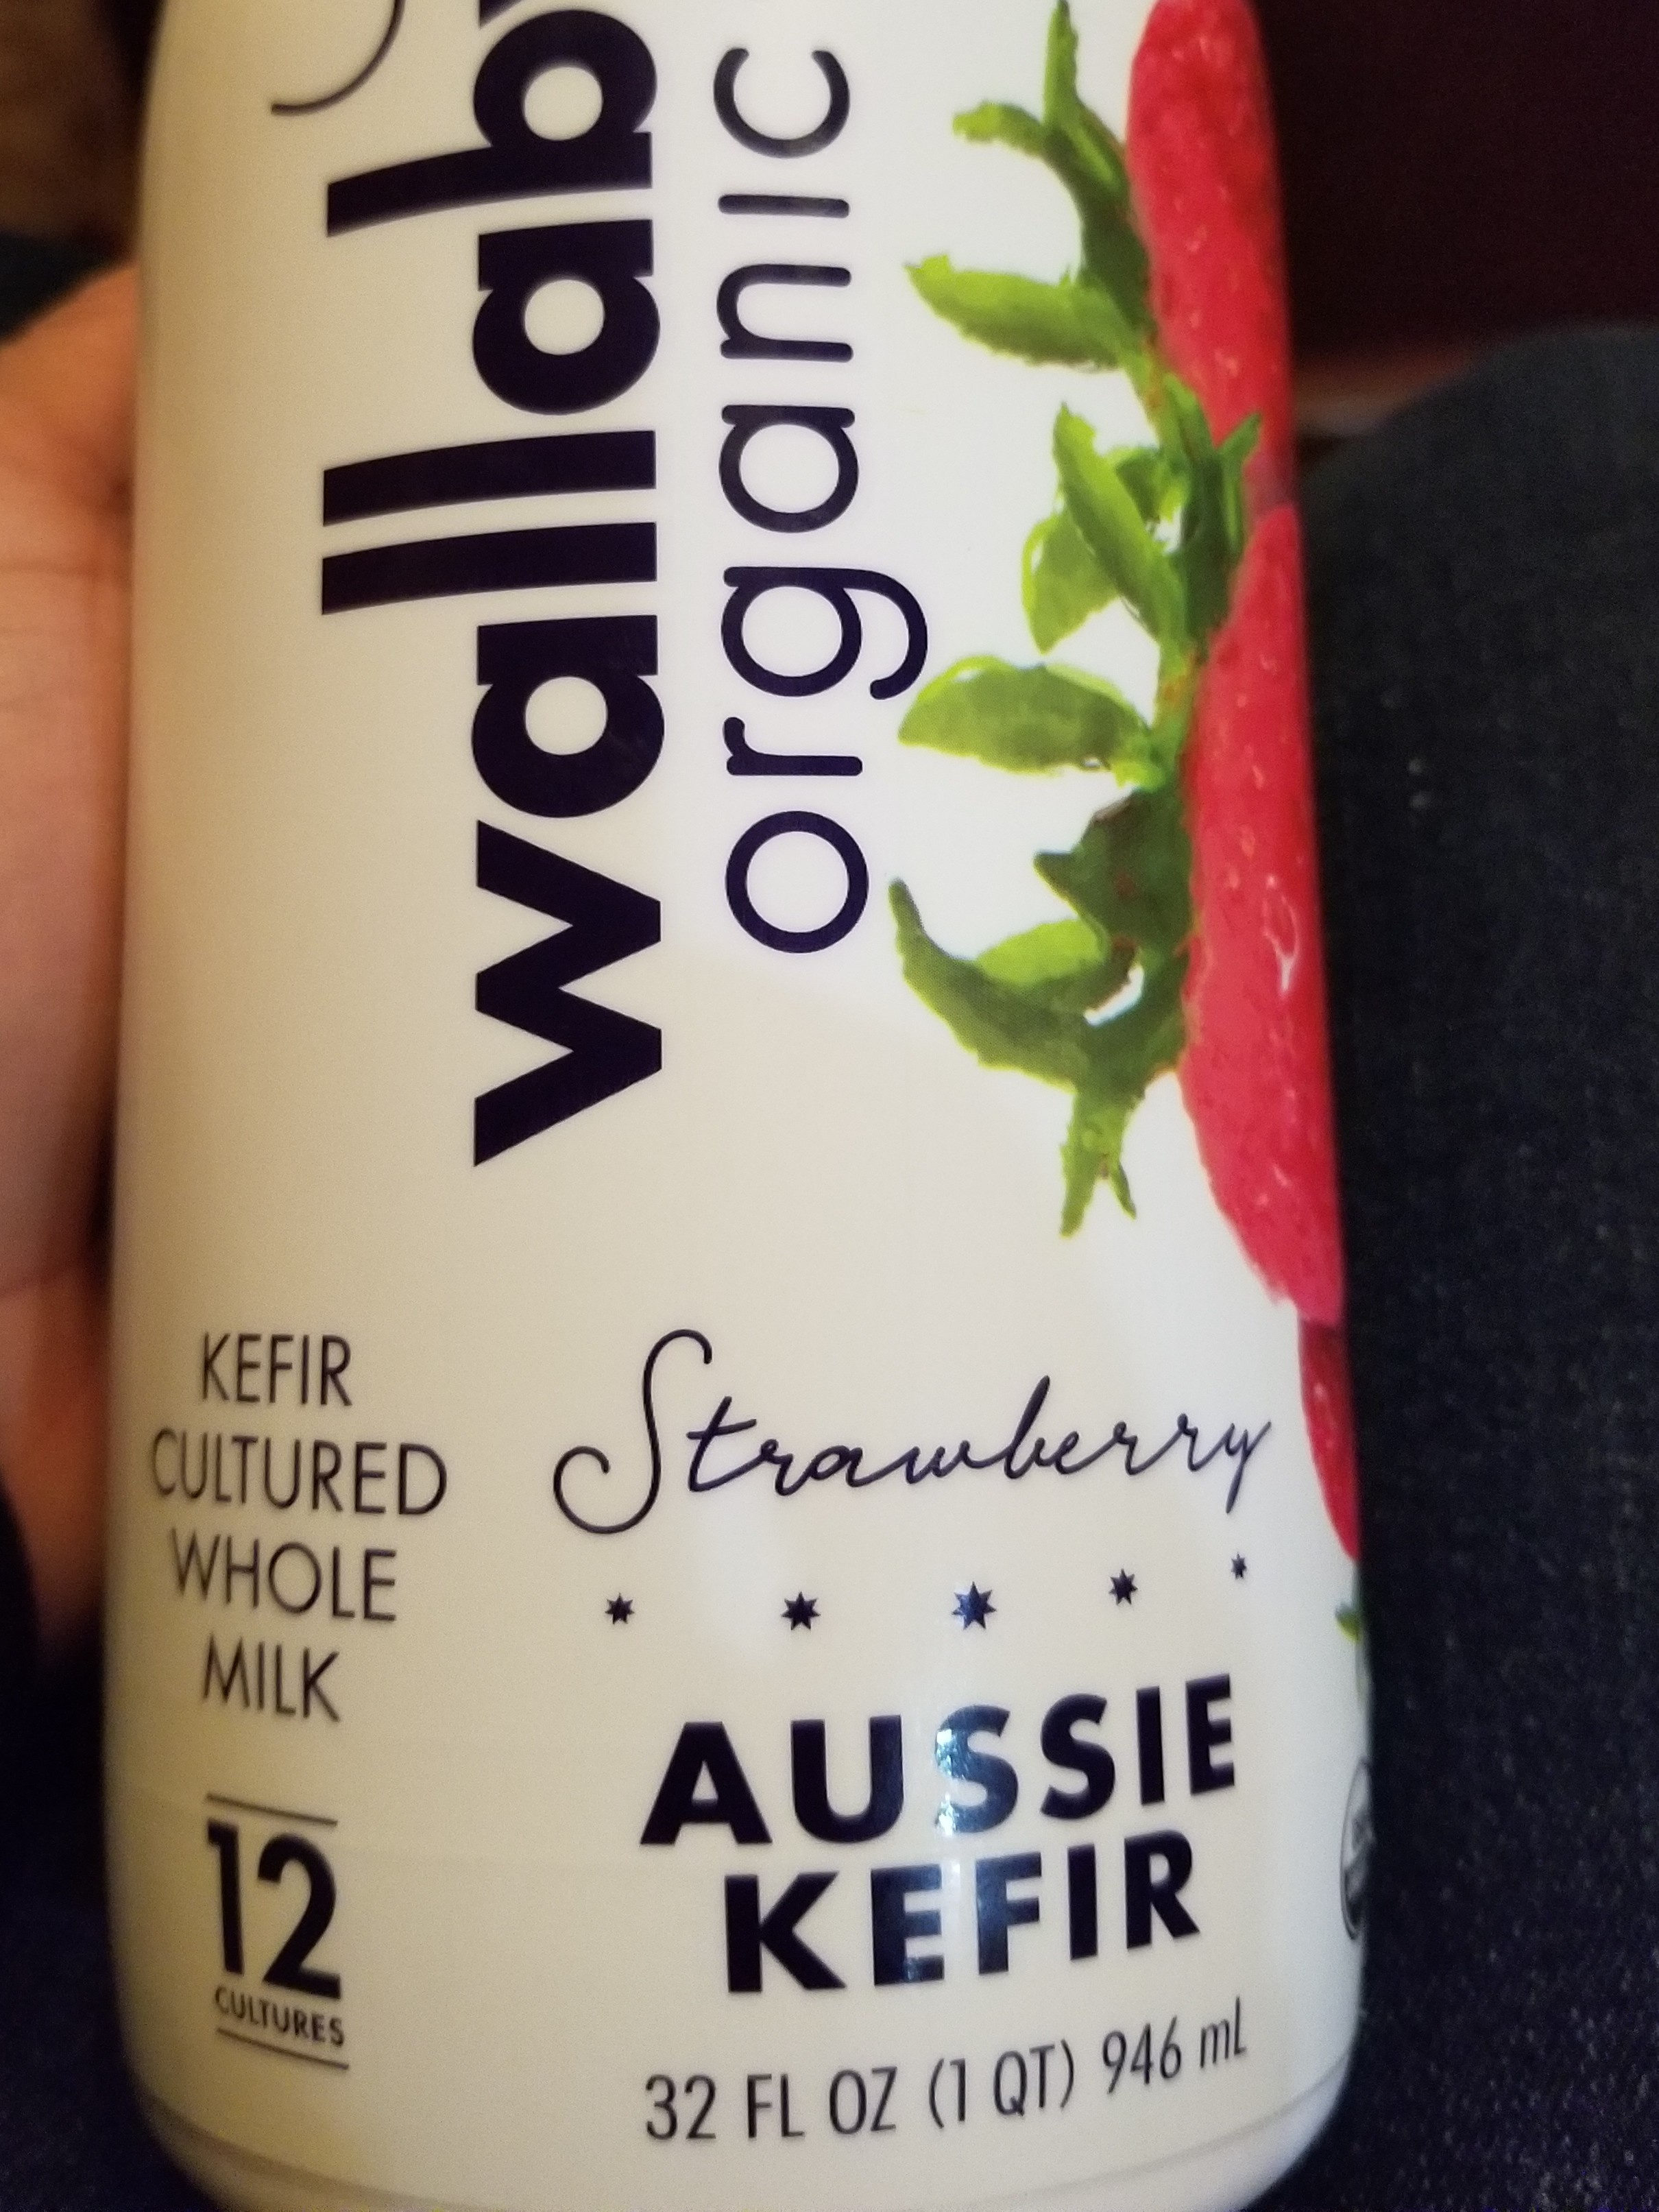 Strawberry aussie kefir cultured whole milk - Product - en